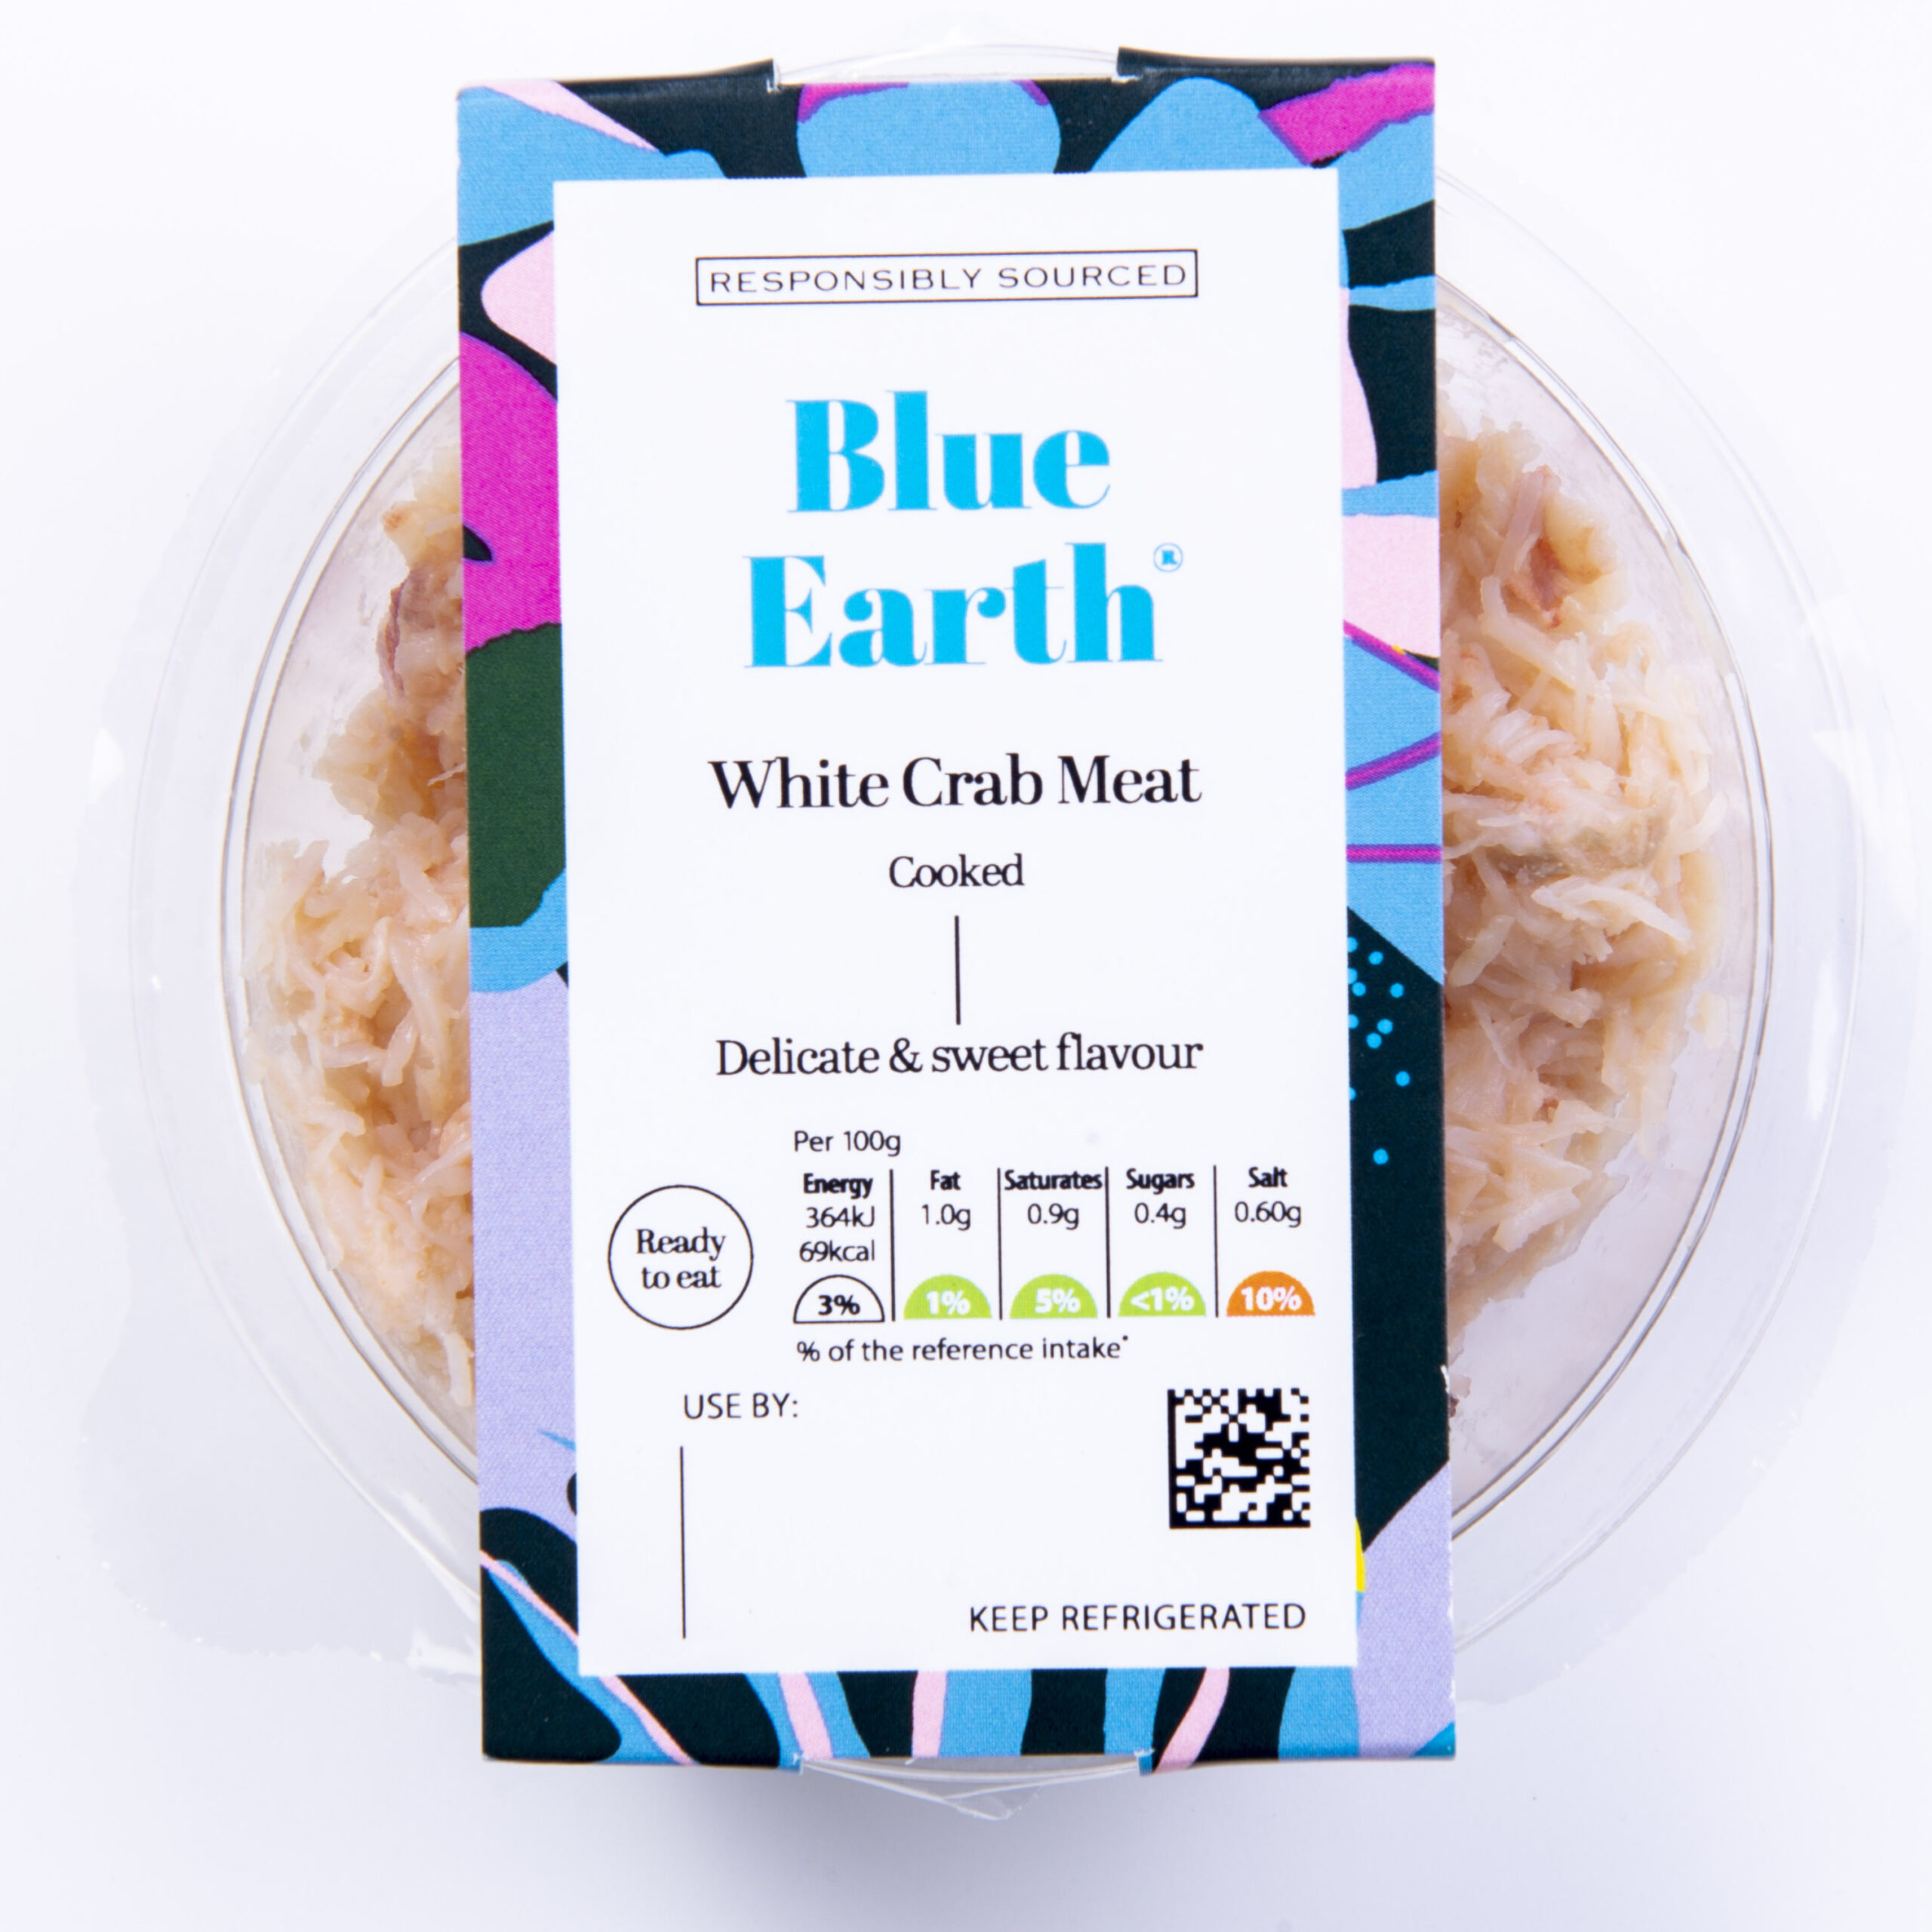 Blue Earth Foods Our Products White Crab Meat